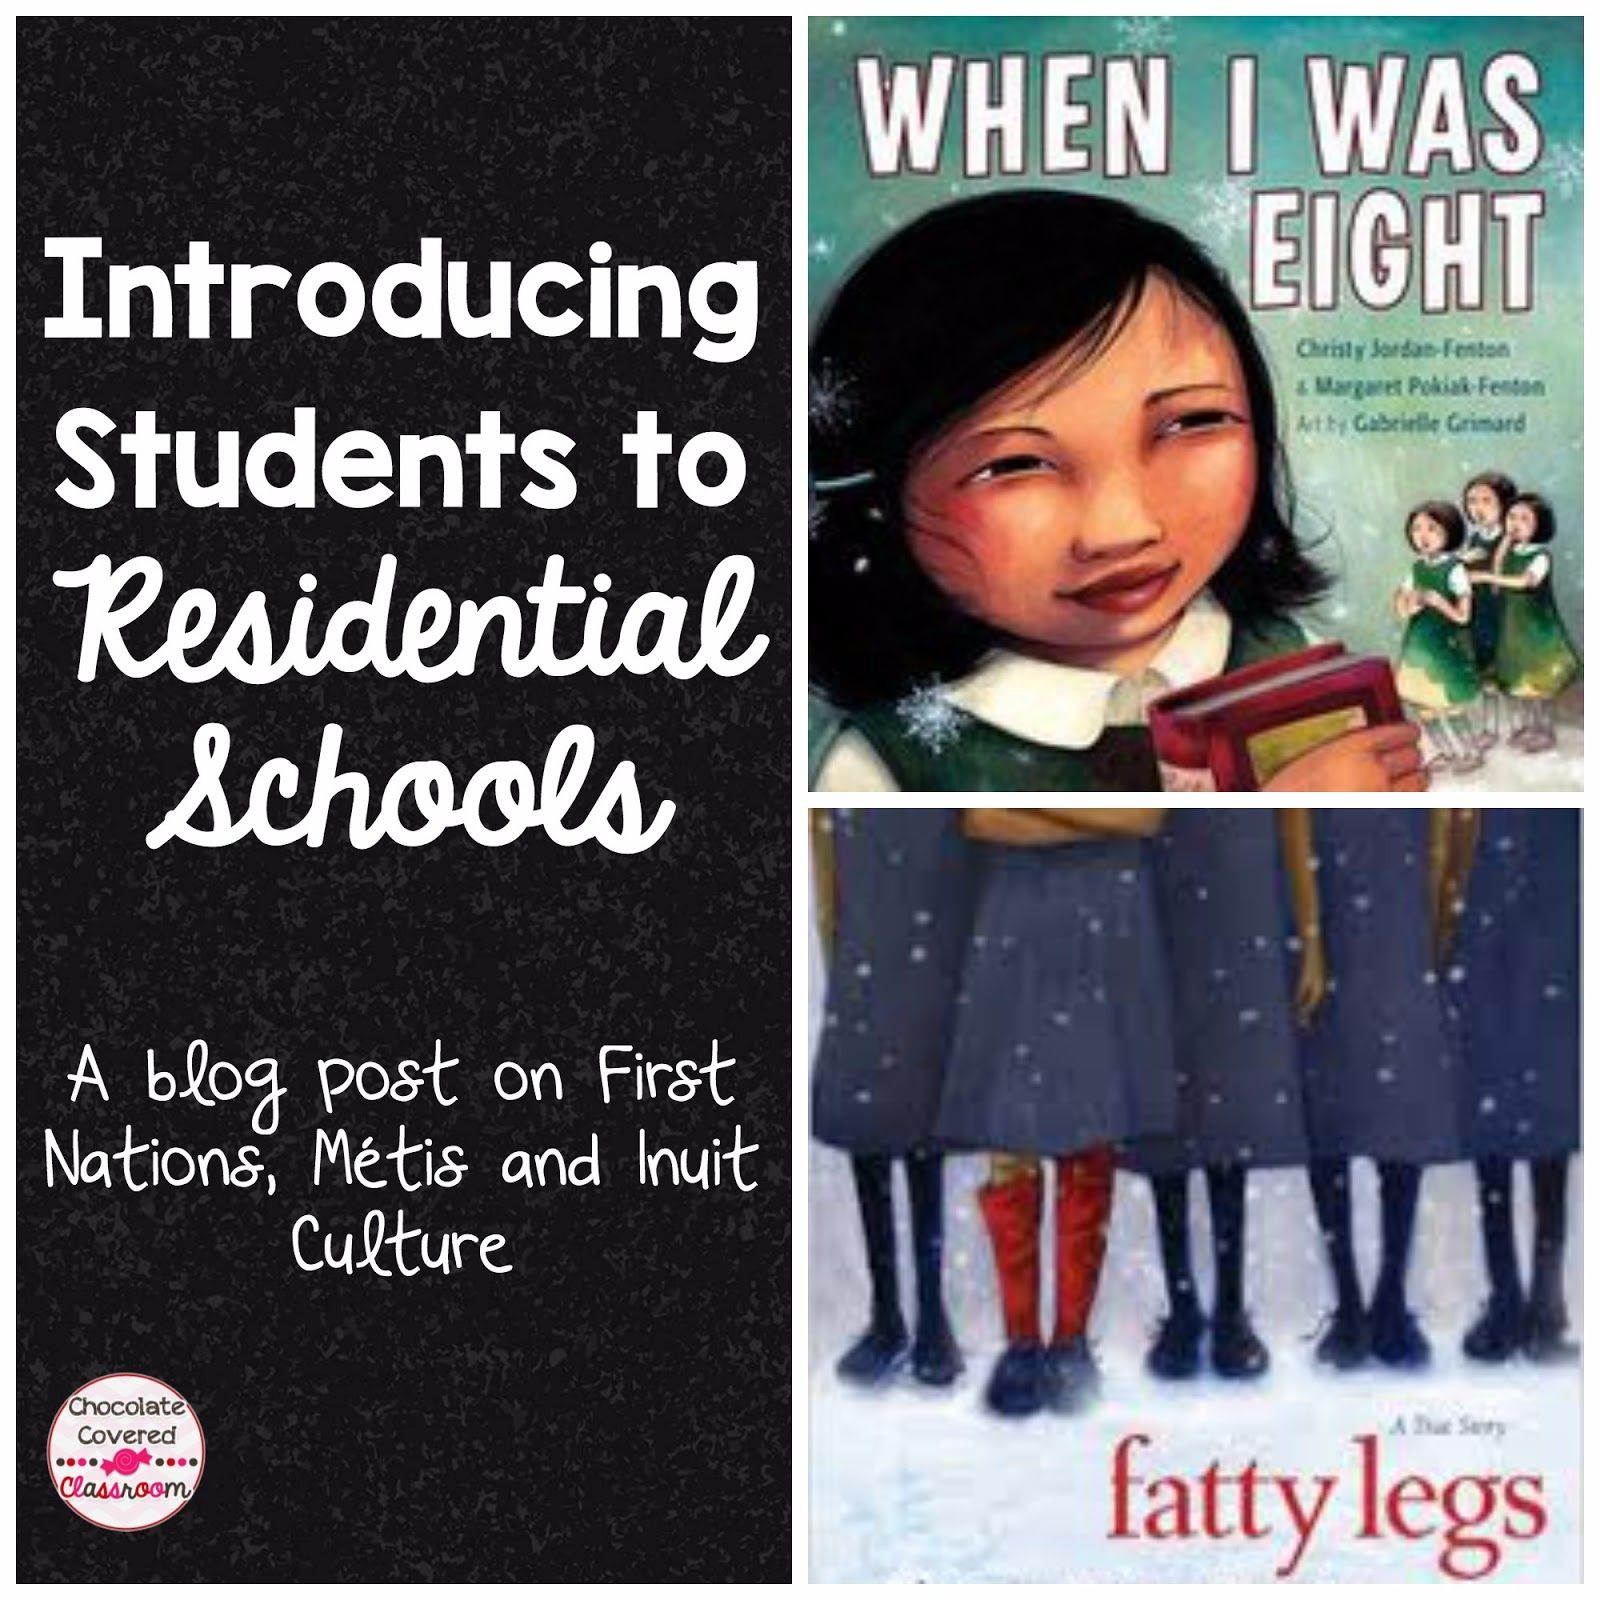 Schools Education6 25 18students: Respecting First Nations, Metis And Inuit Cultures In The